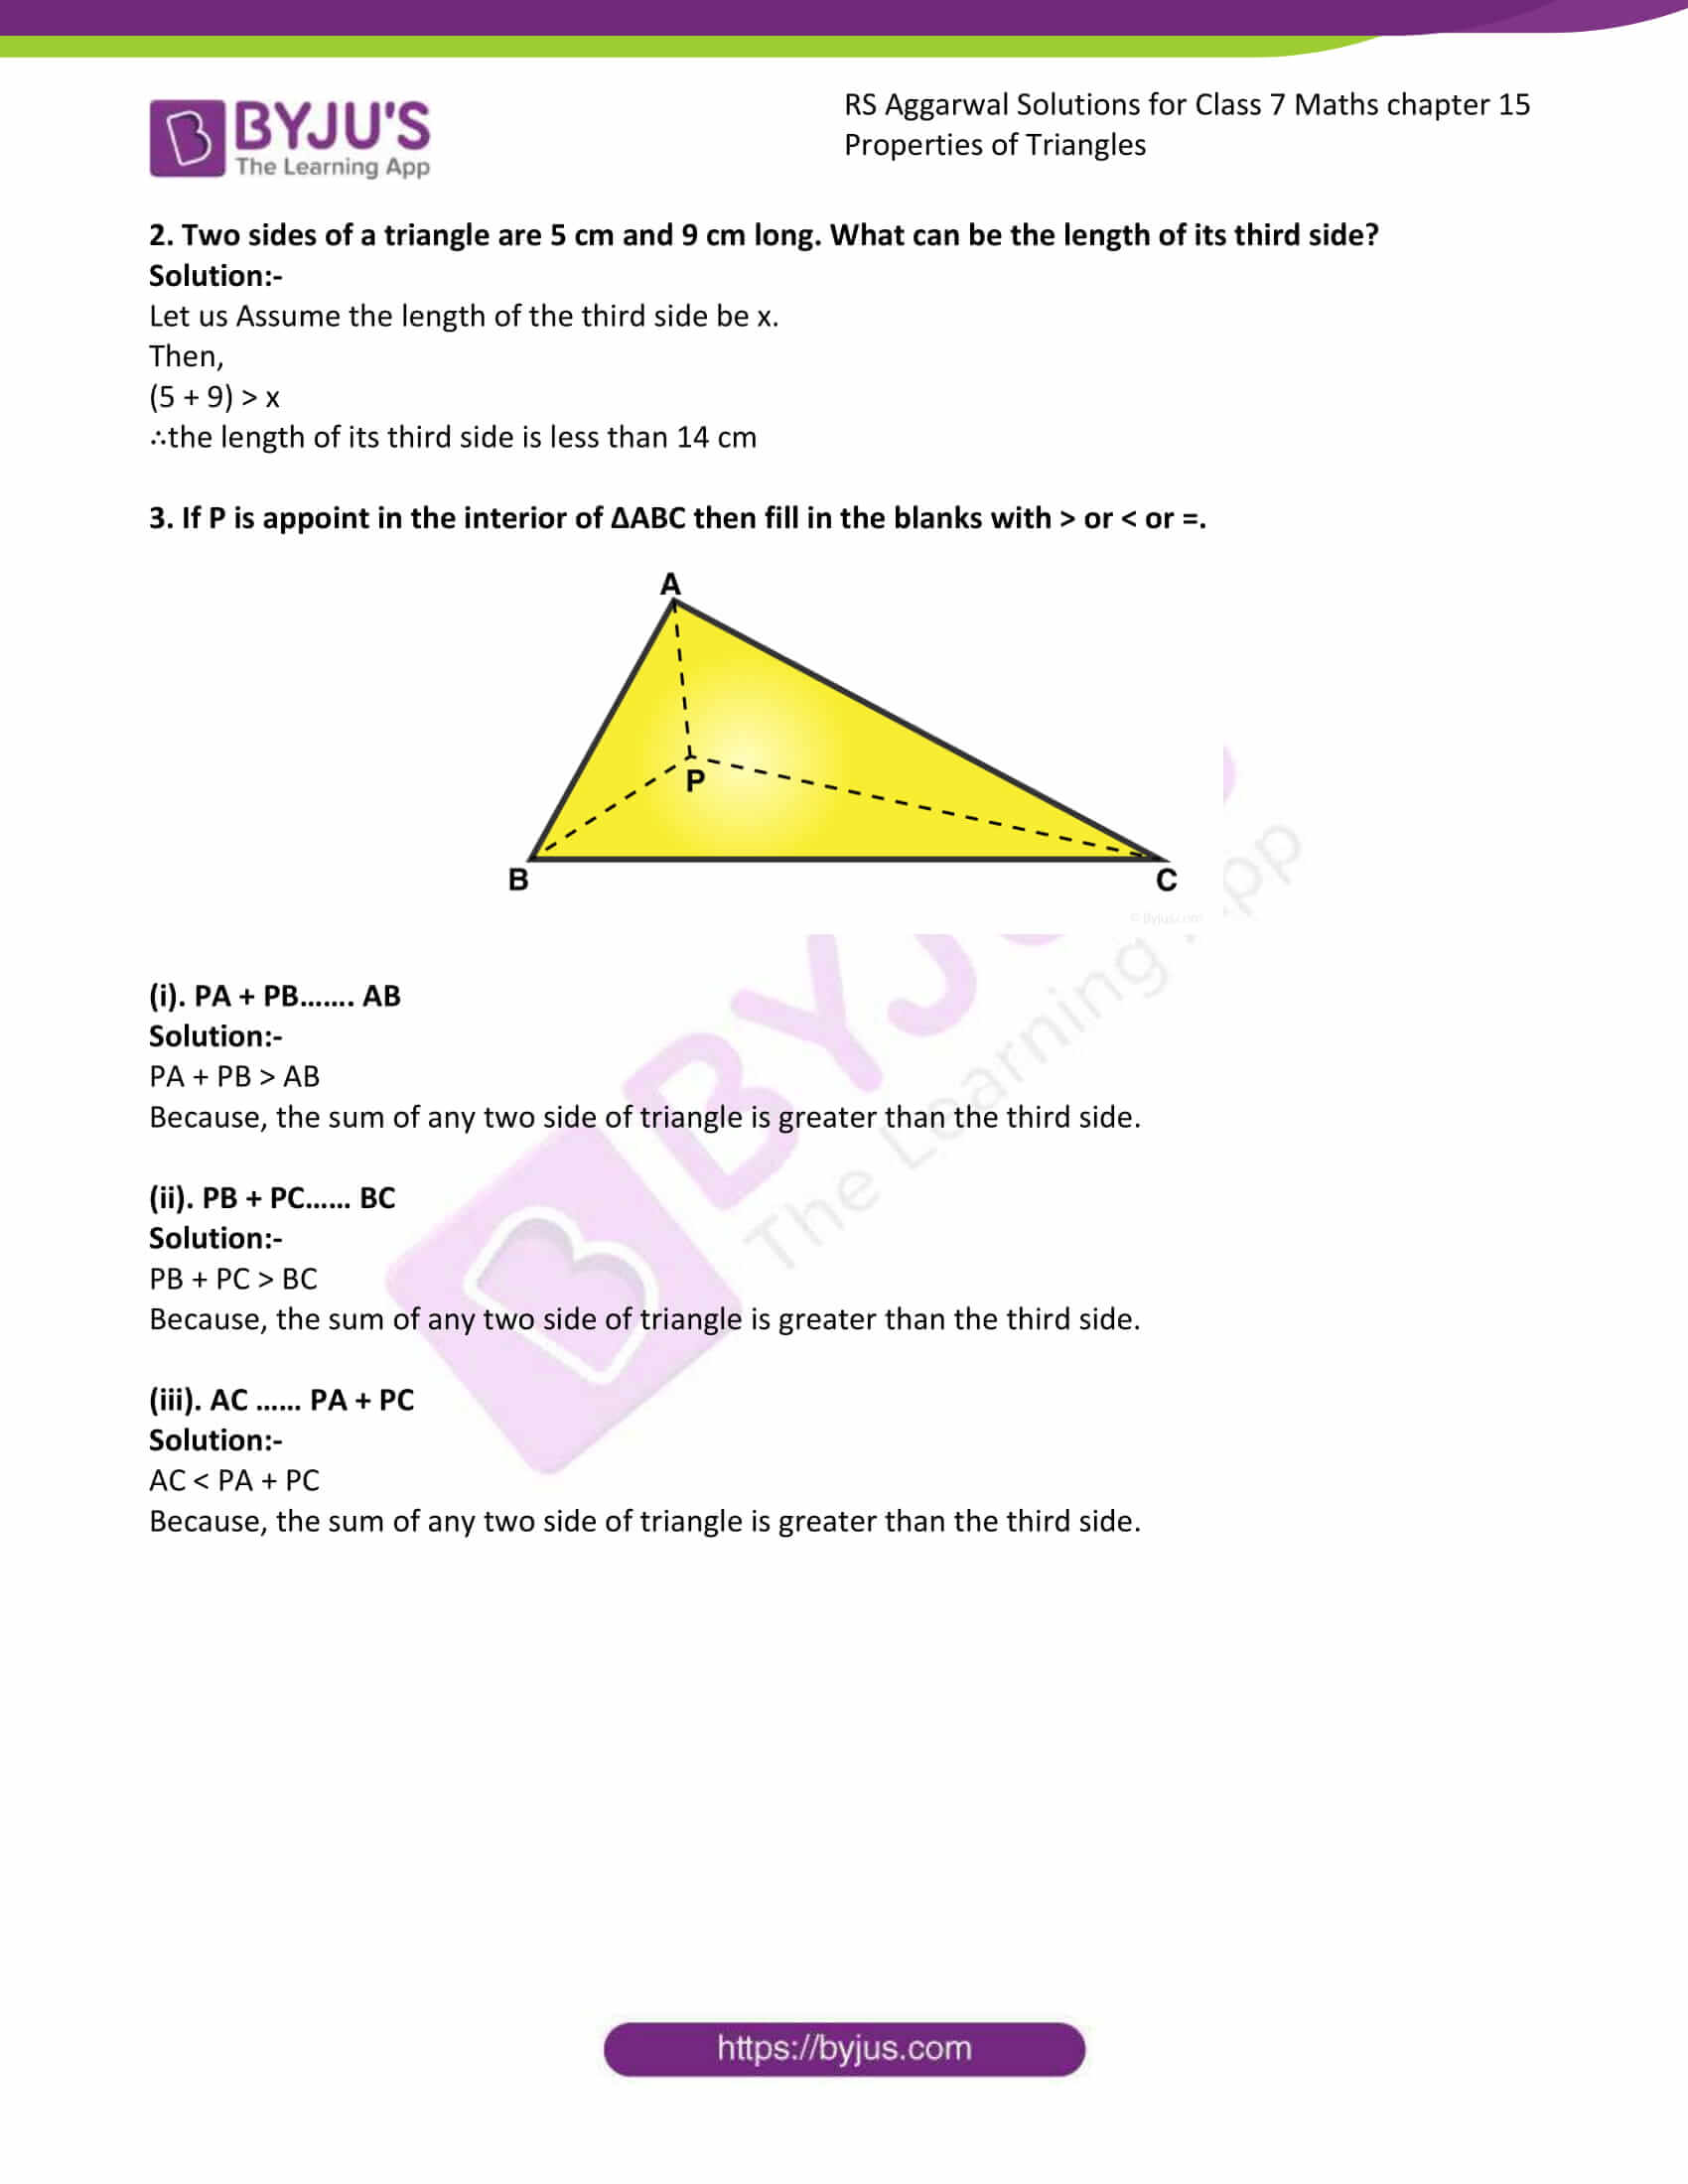 RS Aggarwal Solutions Class 7 Maths Chapter 15 Free Solutions 08